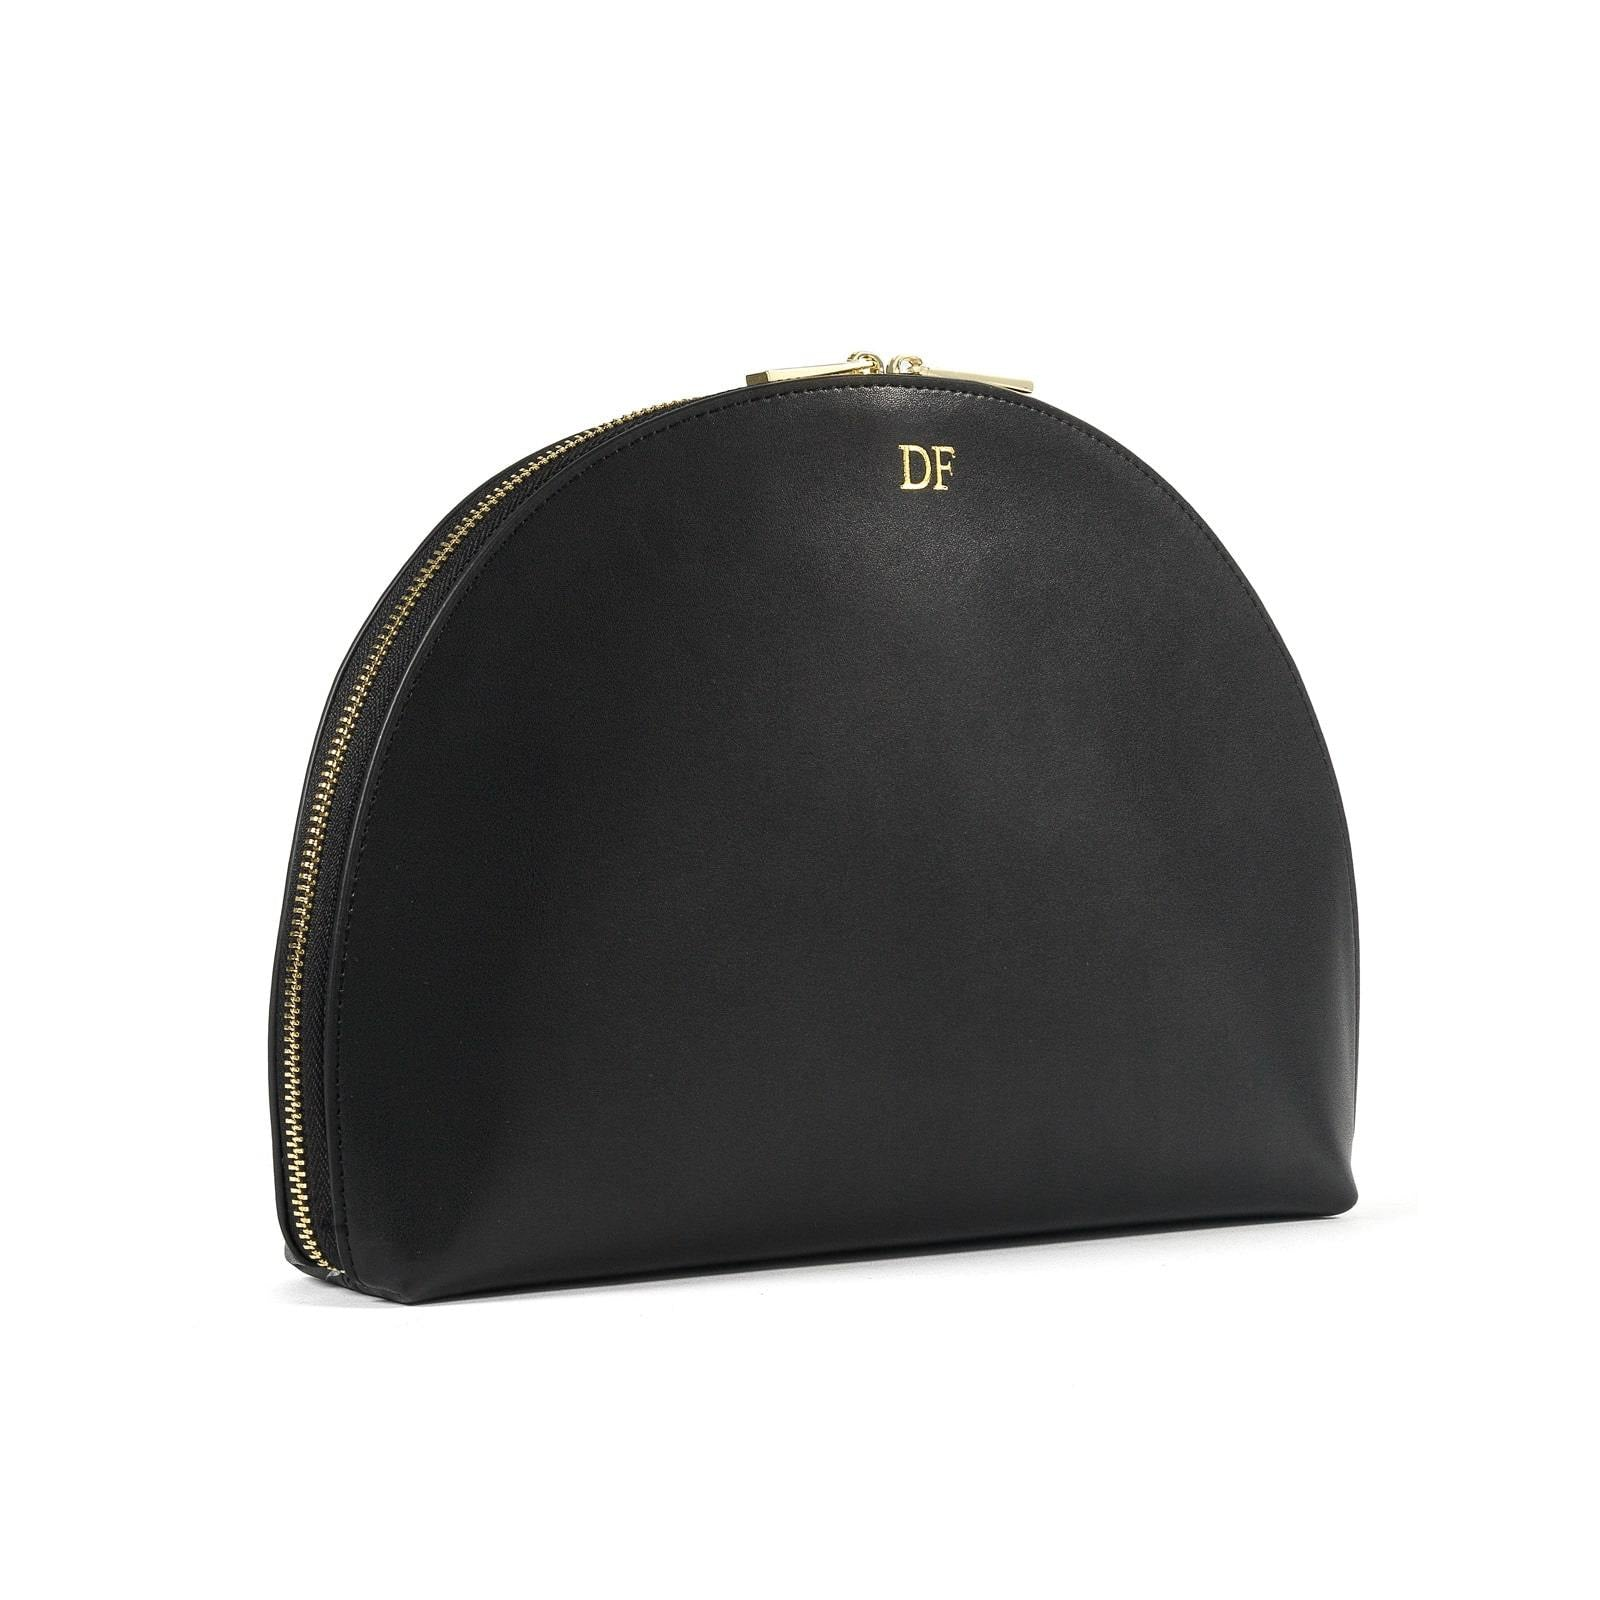 Personalised Black Smooth Leather Half Moon Clutch side image